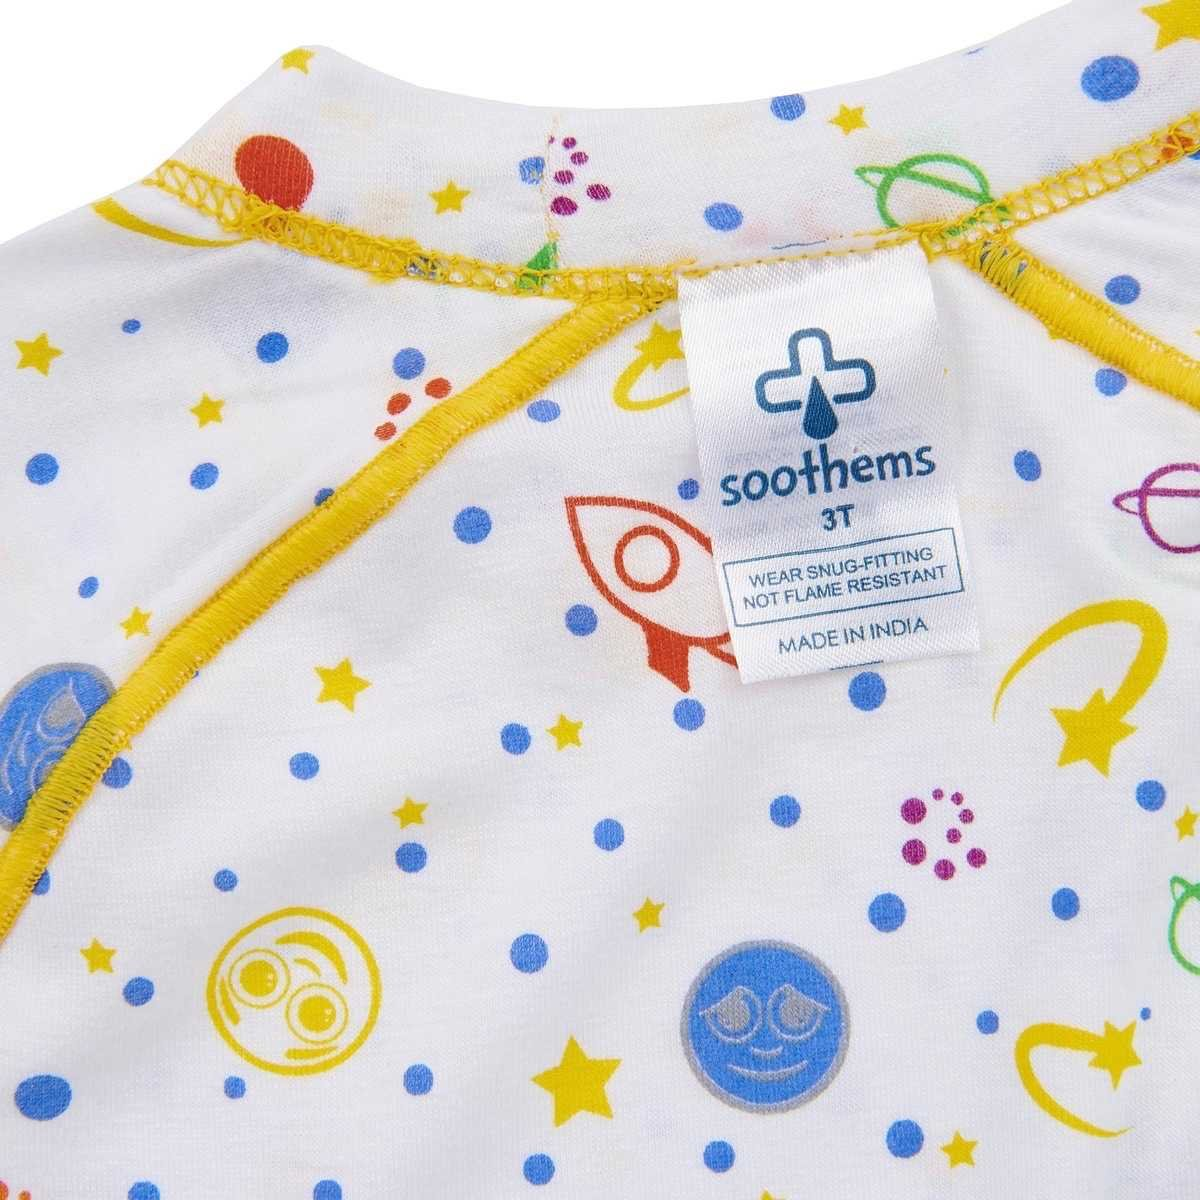 Itch Relief Eczema Shirt - Children's Pajama Top with No Scratch Mitts for Moderate to Severe Eczema Treatment for Kids - Also Used as Wet Wraps Clothing